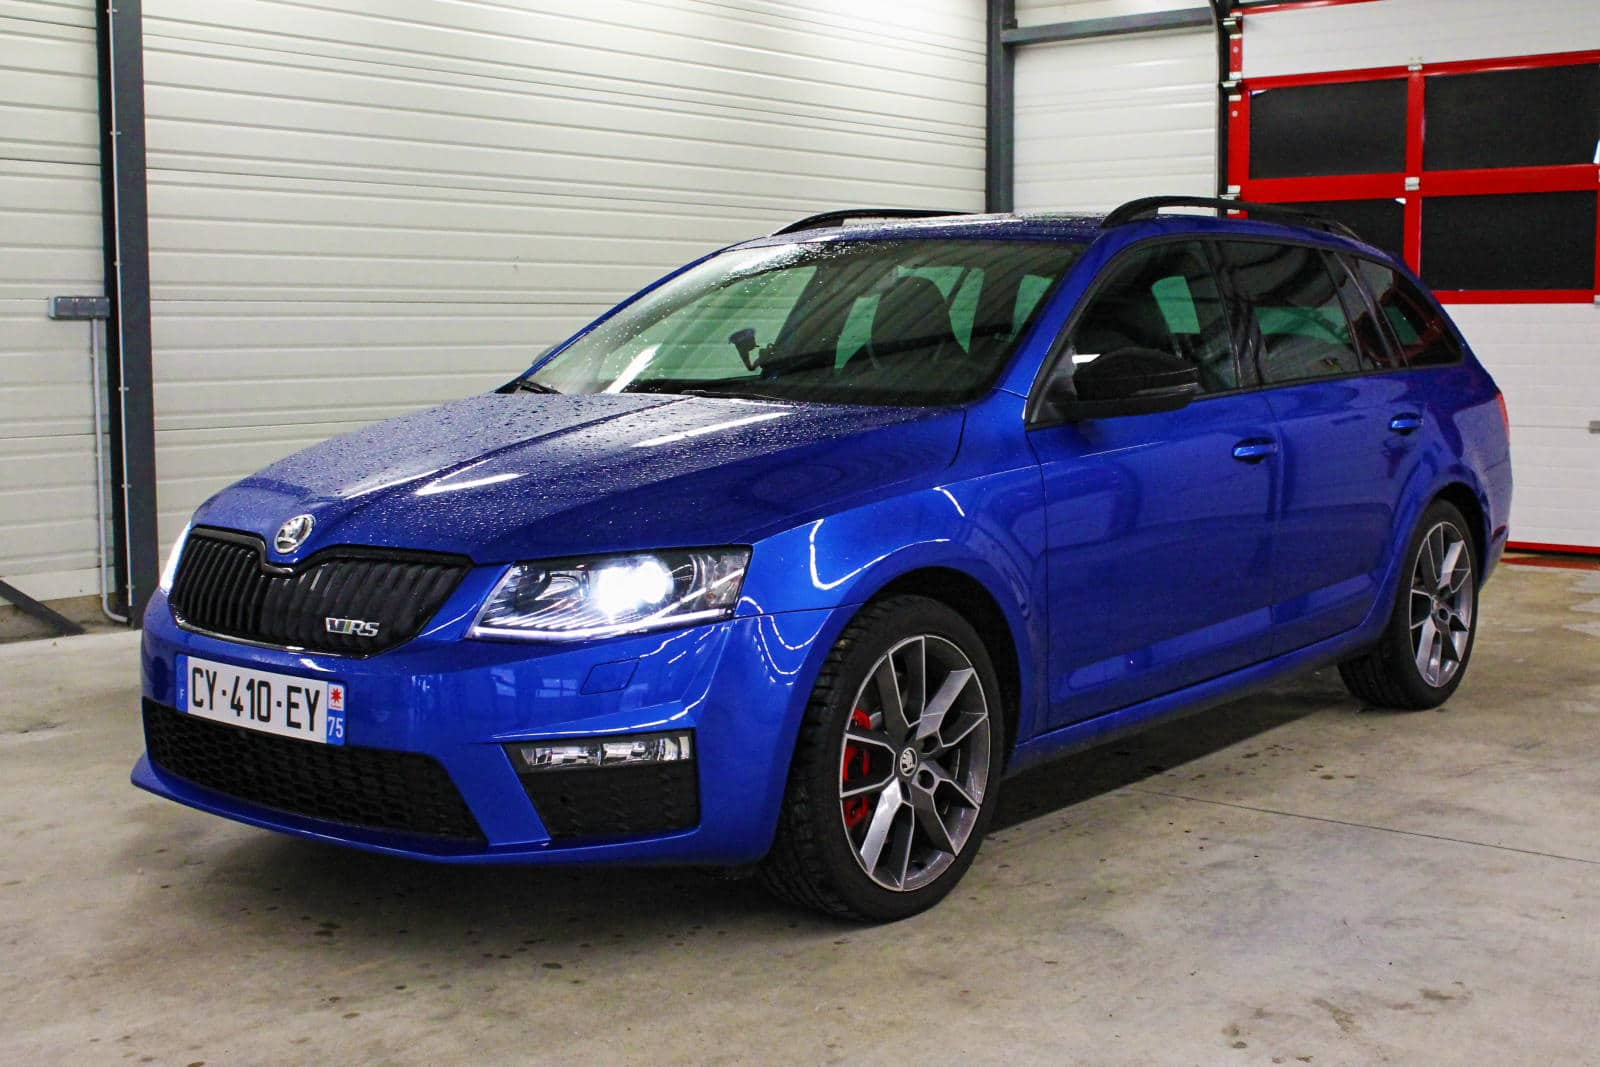 skoda octavia rs 2014 test autos weblog. Black Bedroom Furniture Sets. Home Design Ideas